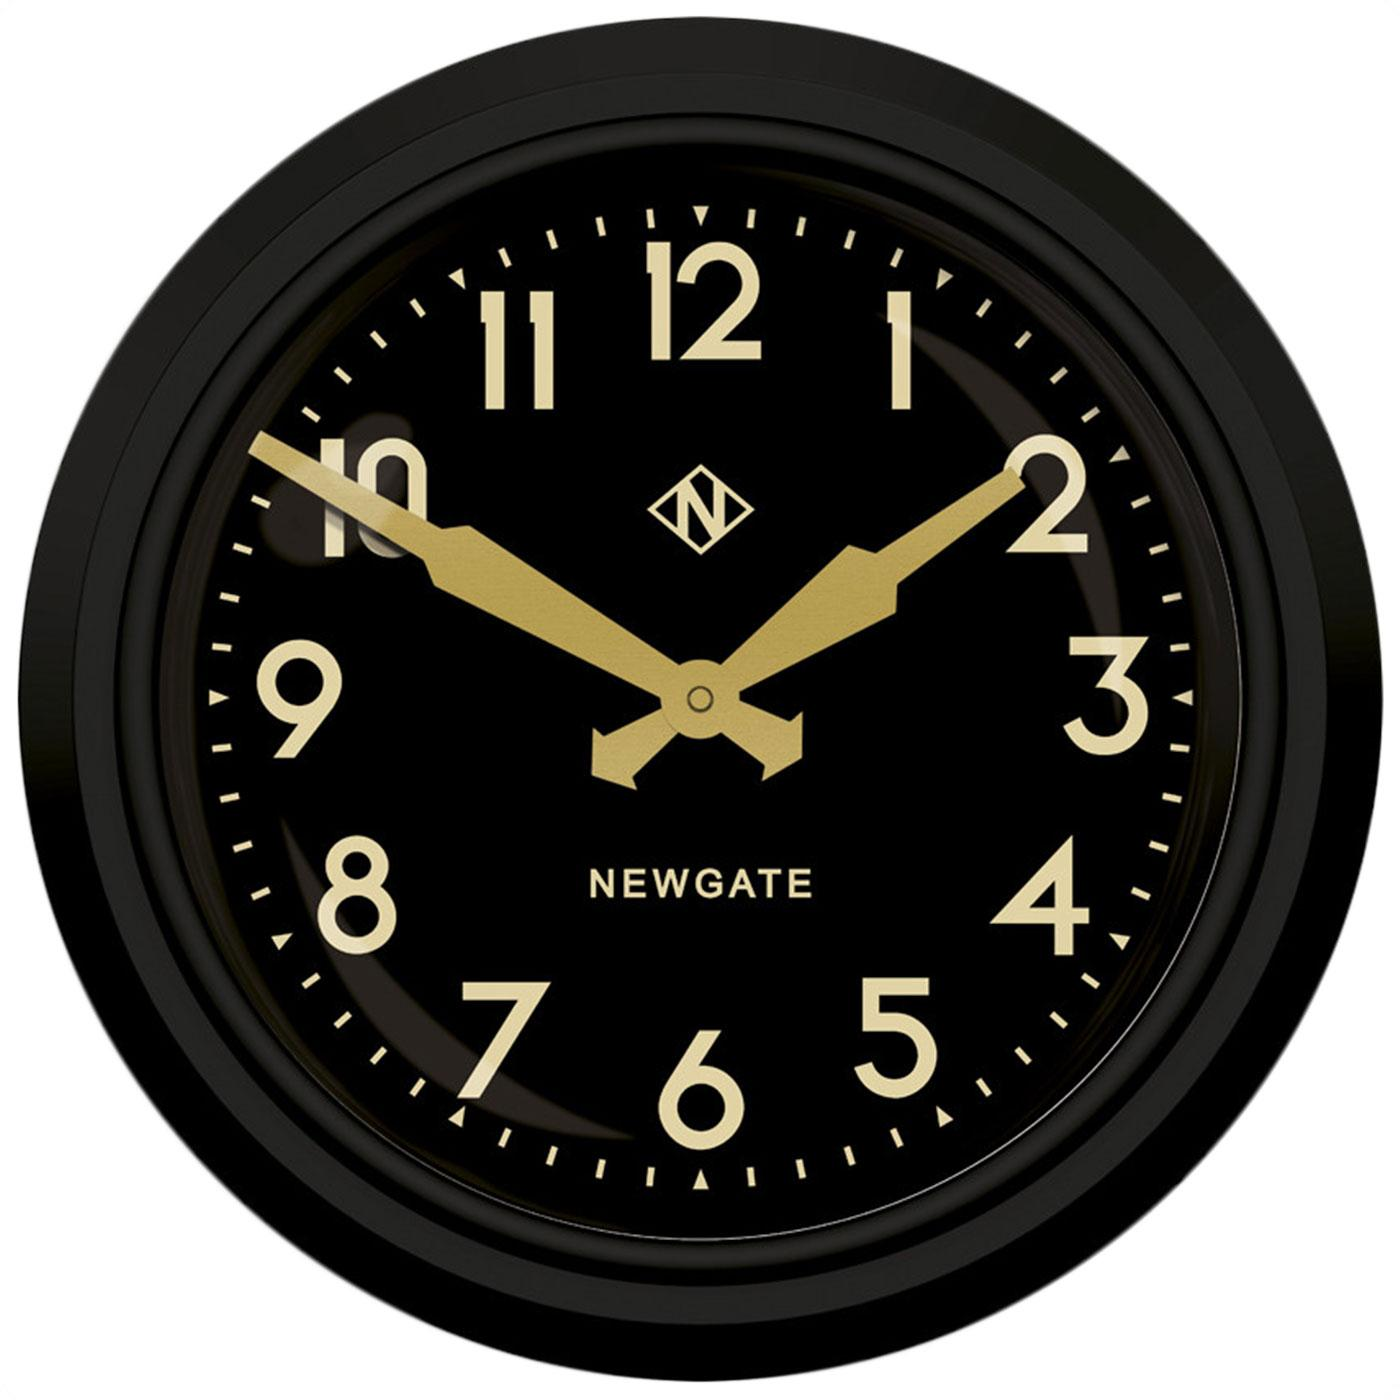 The Electric NEWGATE CLOCKS Retro Station Clock BB